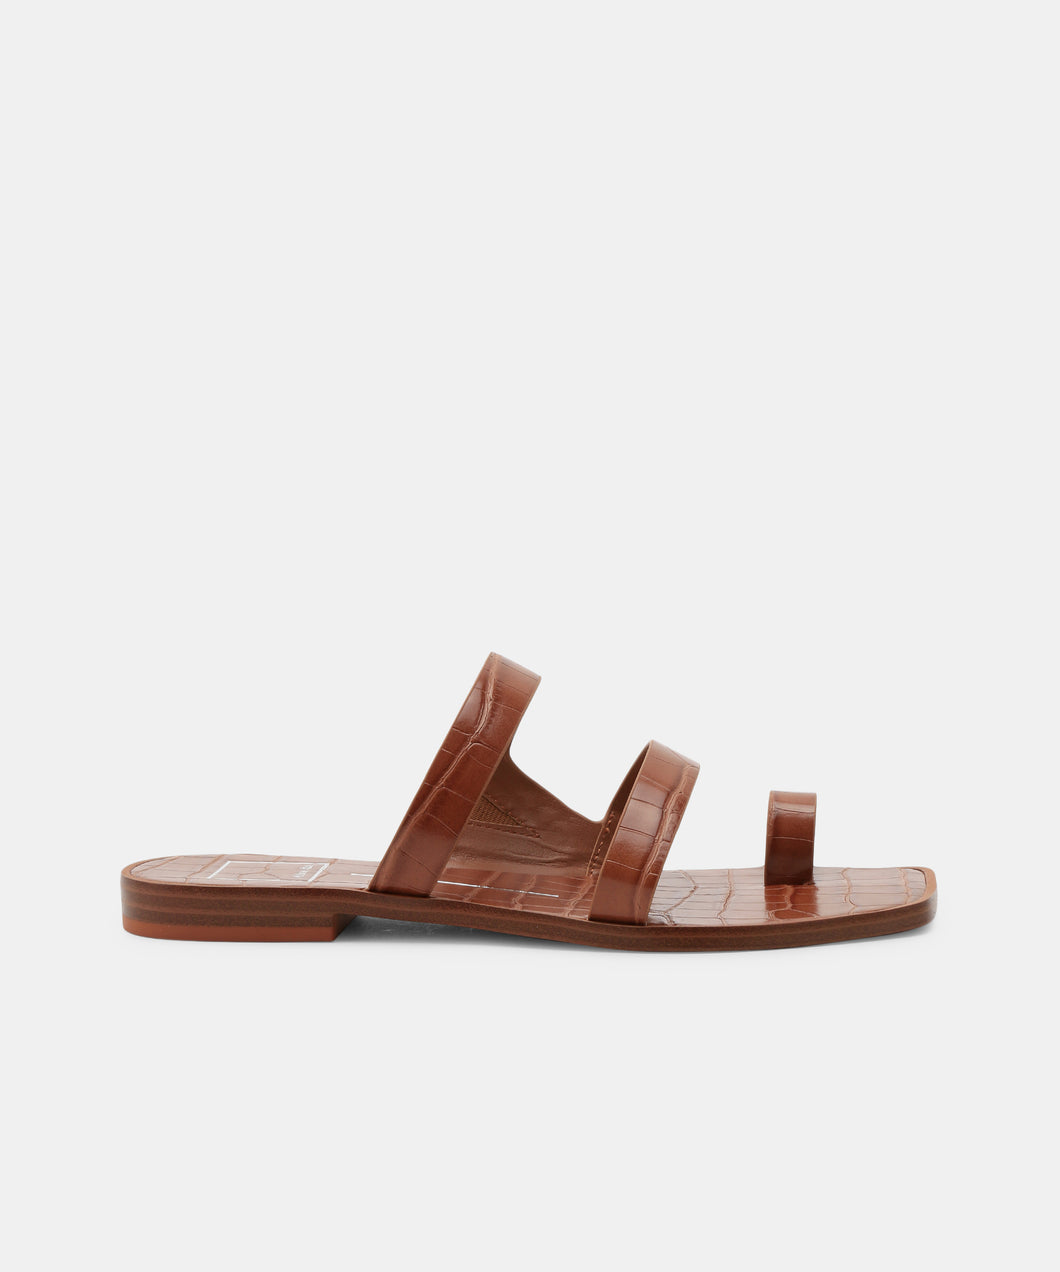 ISALA SANDALS BROWN -   Dolce Vita